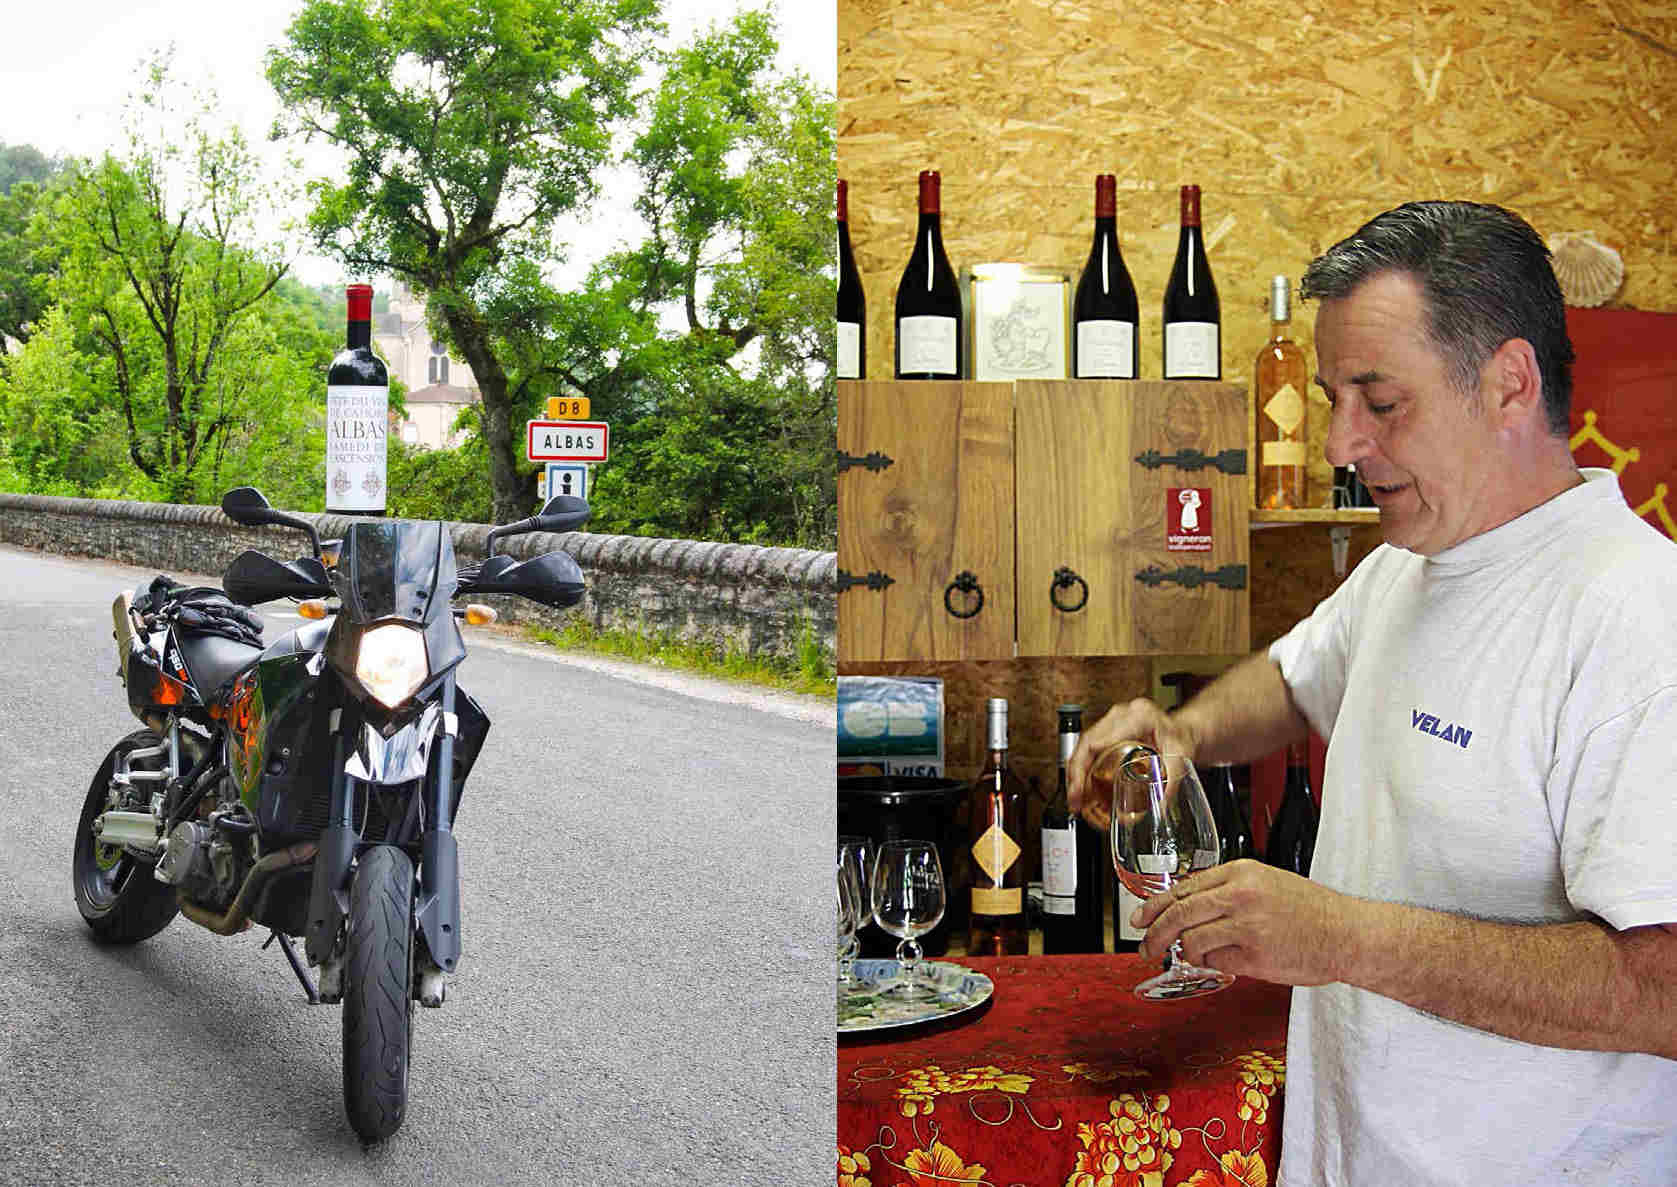 Collage picture, left side KTM parked on the road with a view into a valley in the background, right side, Pierre pouring a glass of his own wine.